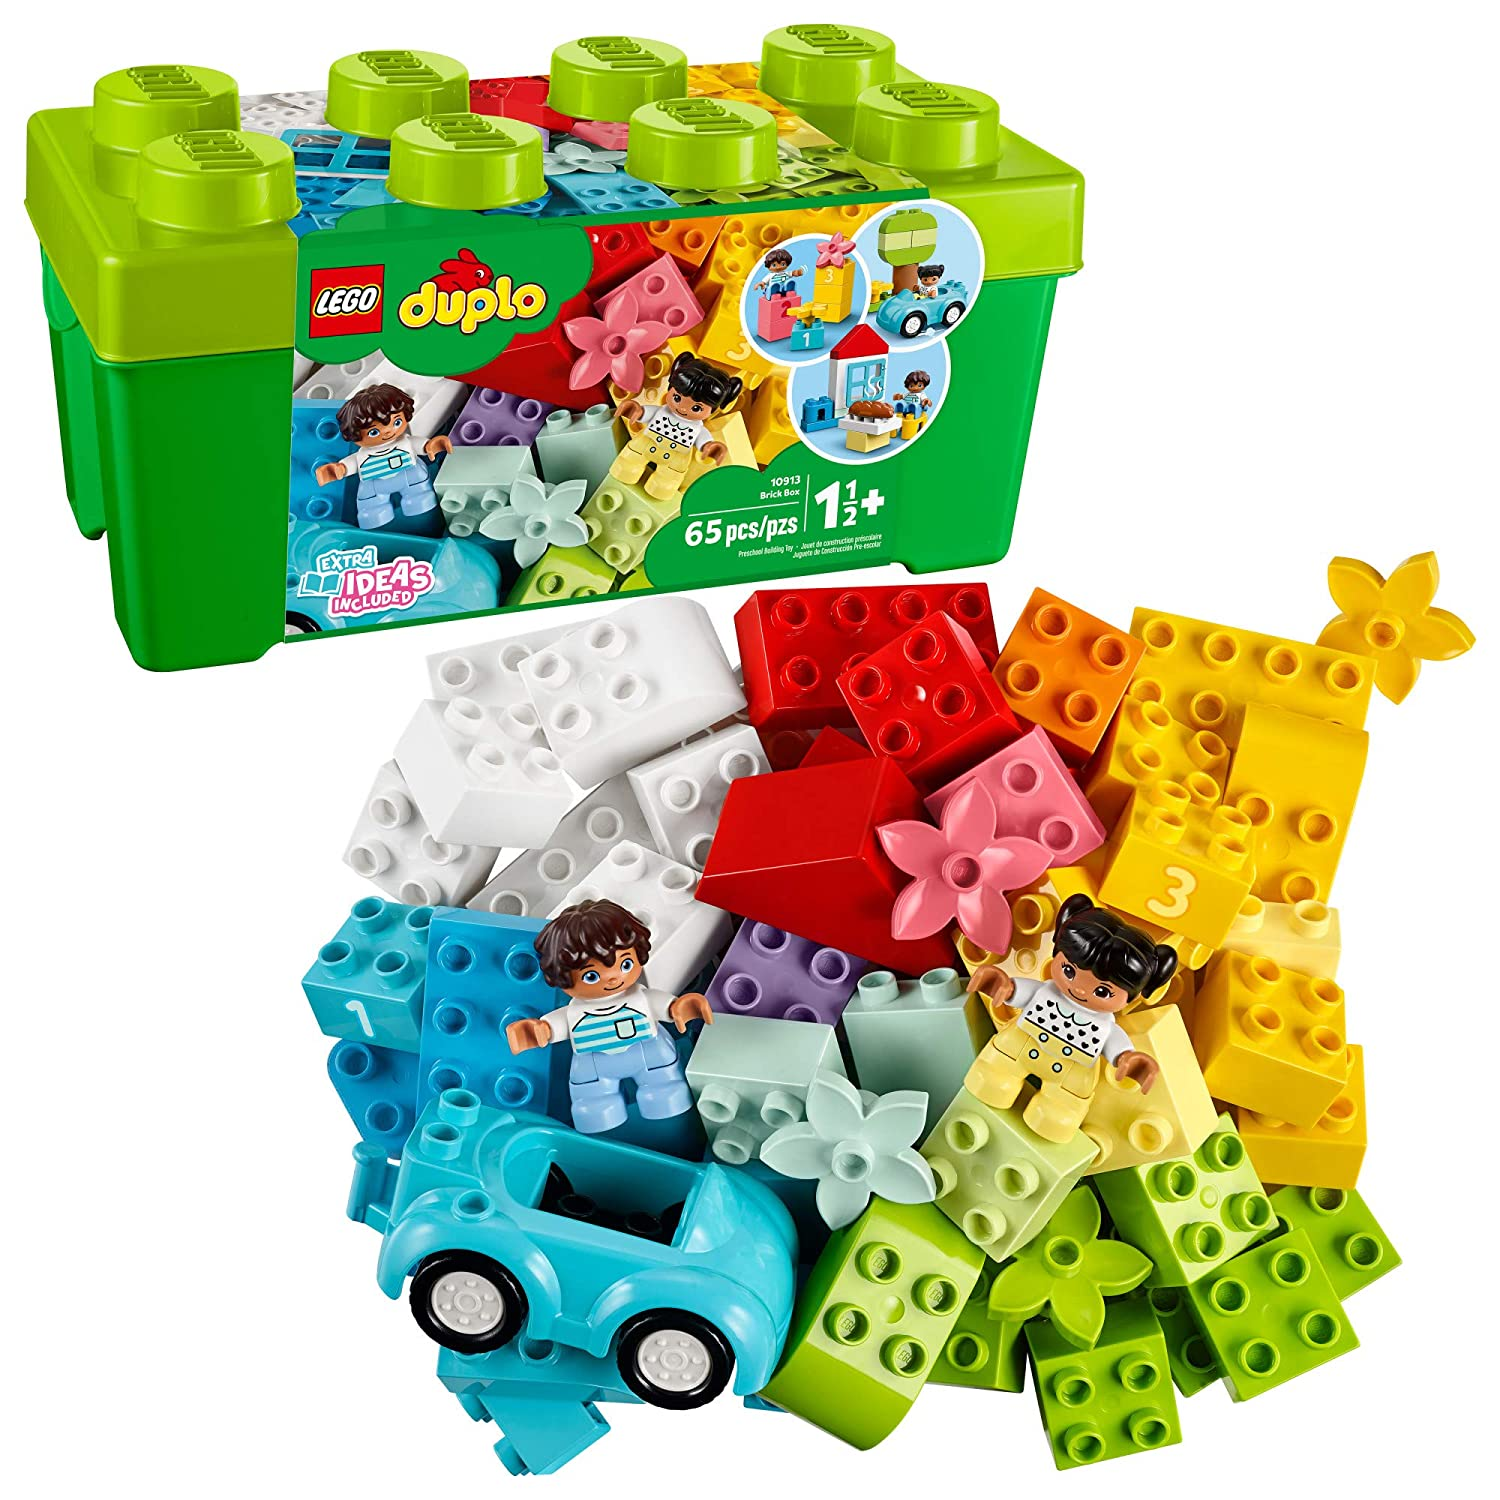 LEGO DUPLO Classic Brick Box 10913 First Set with Storage Box, Great Educational Toy for Toddlers 18 Months and up, New 2020 (65 Pieces)